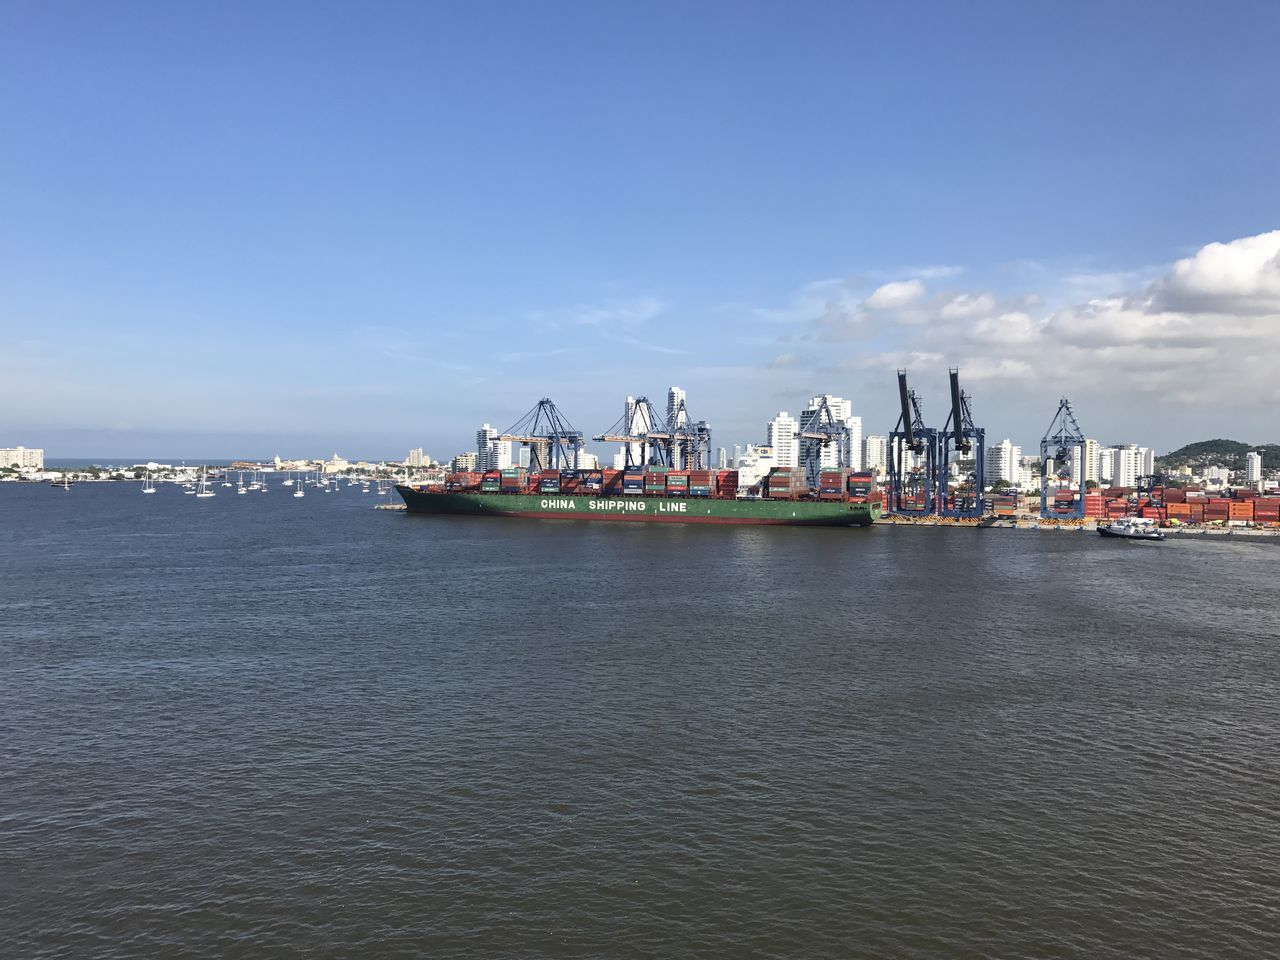 Business Business Finance And Industry Cargo Container Commercial Dock Container Ship Day Freight Transportation Harbor Industry Nautical Vessel No People Offshore Platform Outdoors Sea Ship Shipping  Sky Trading Transportation